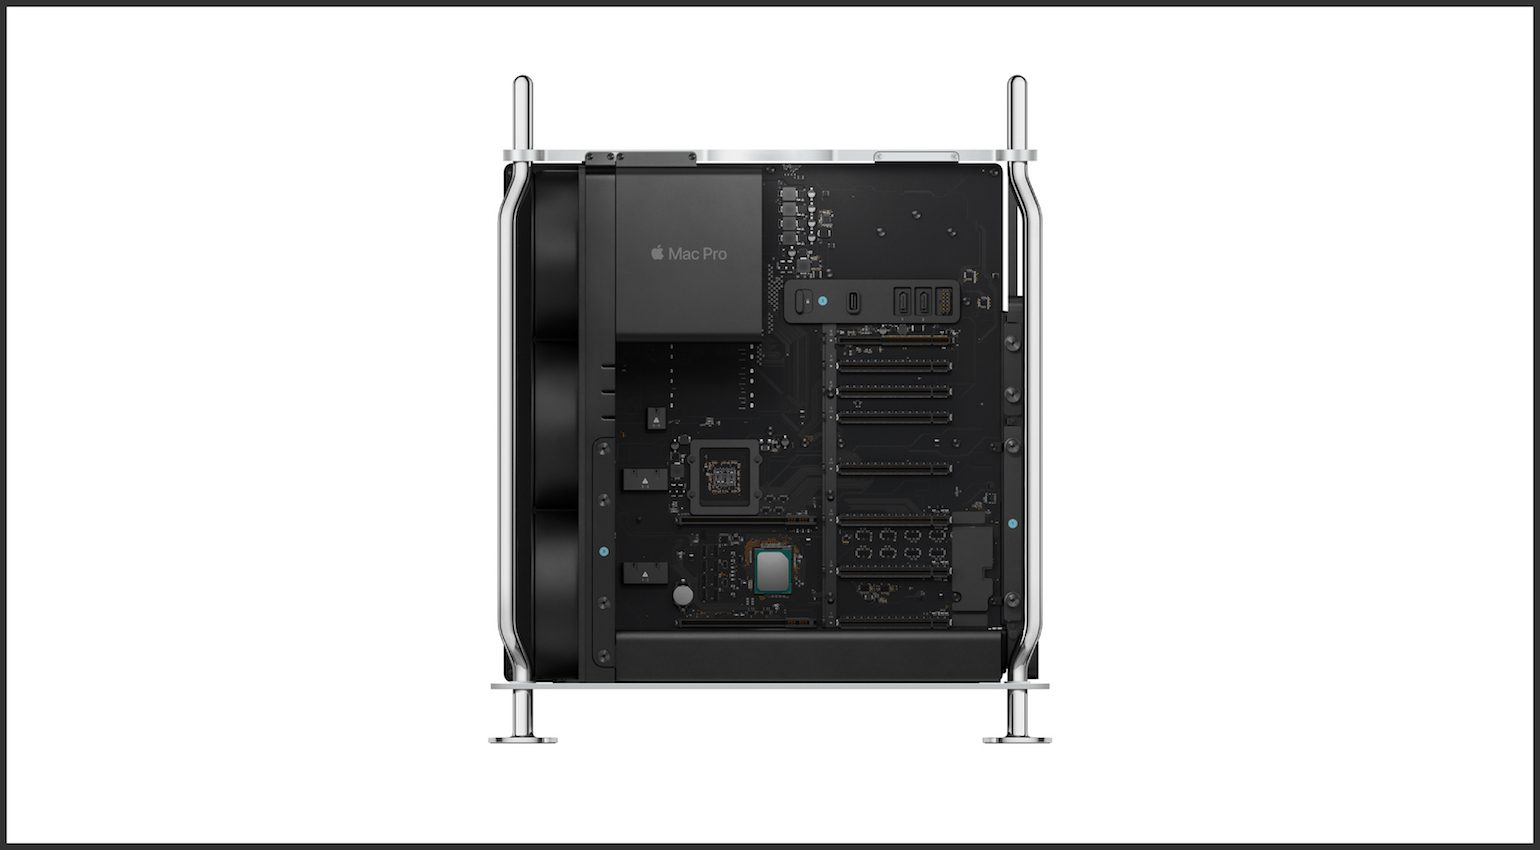 Apple's new Mac Pro GPUs are now available.